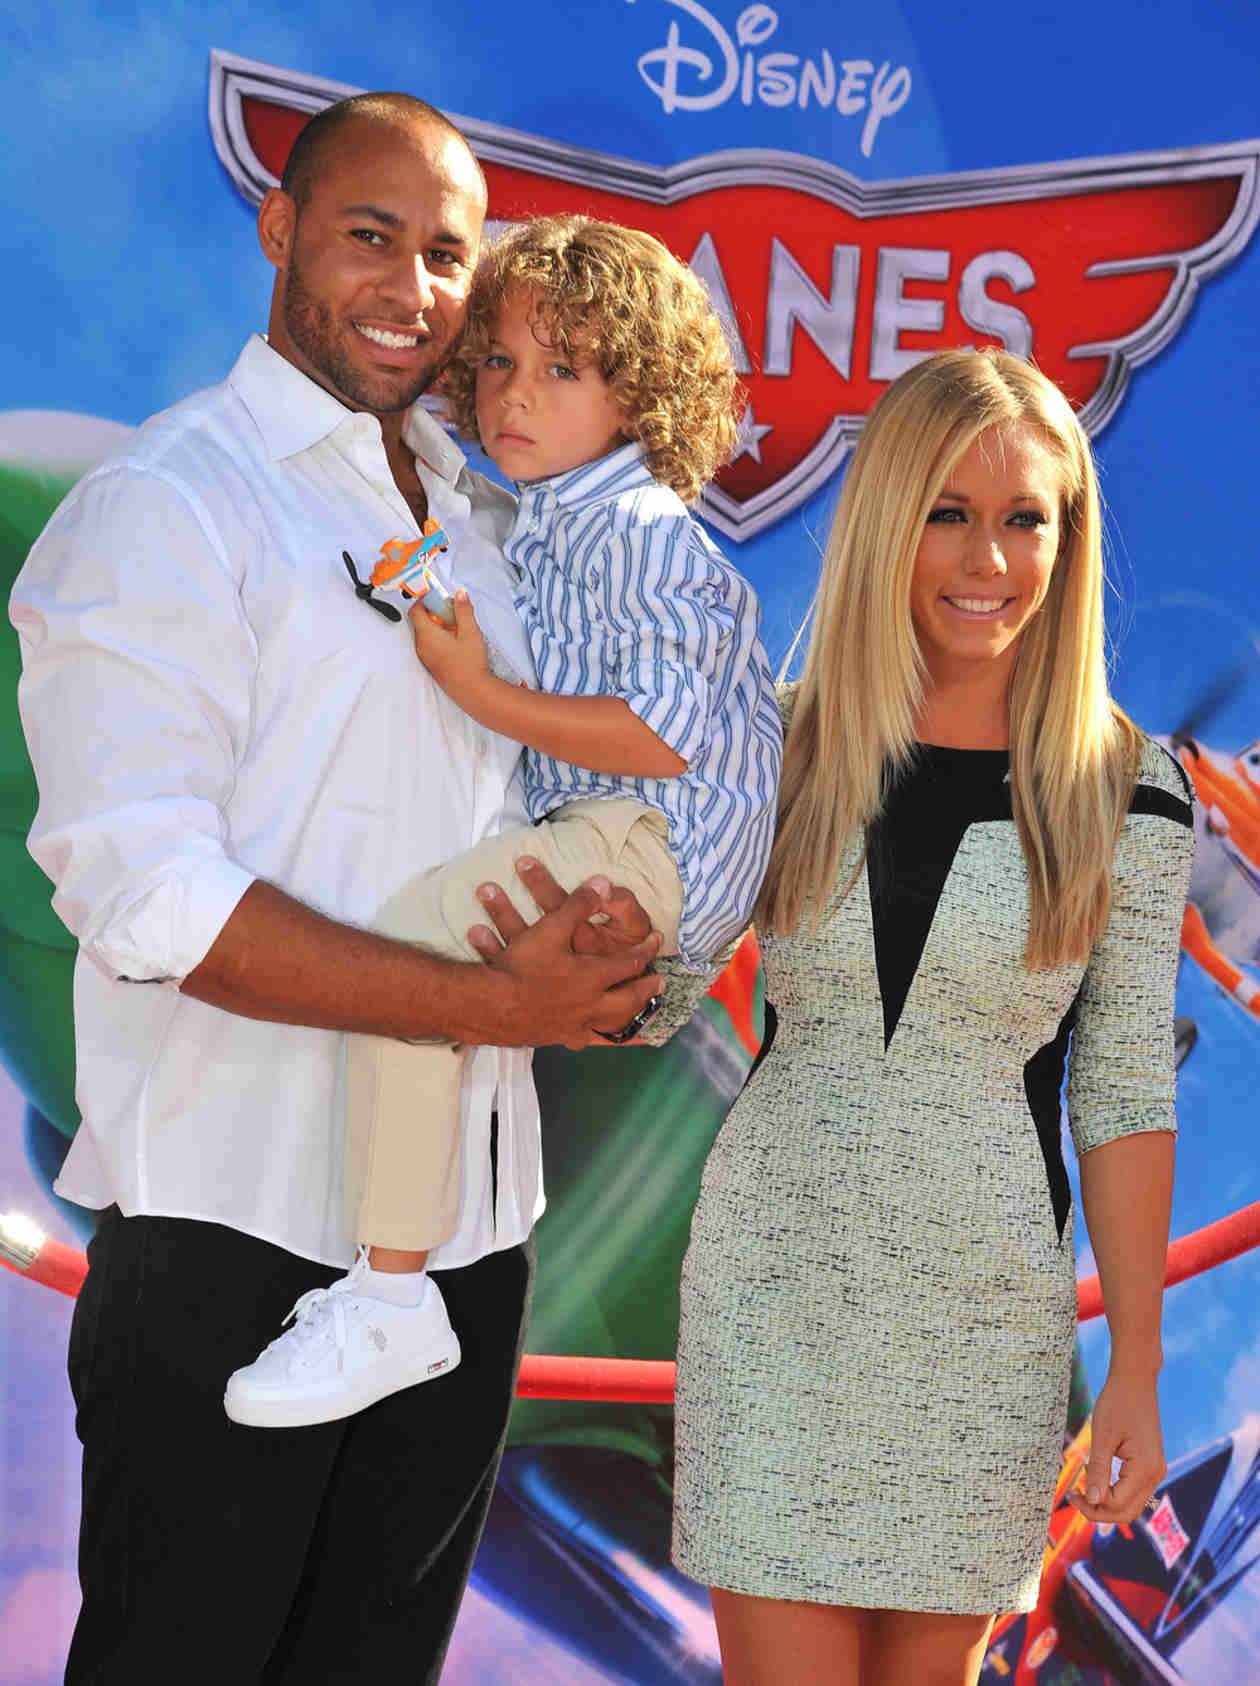 Kendra Wilkinson and Hank Baskett Share Baby Alijah Mary's First Family Photo!